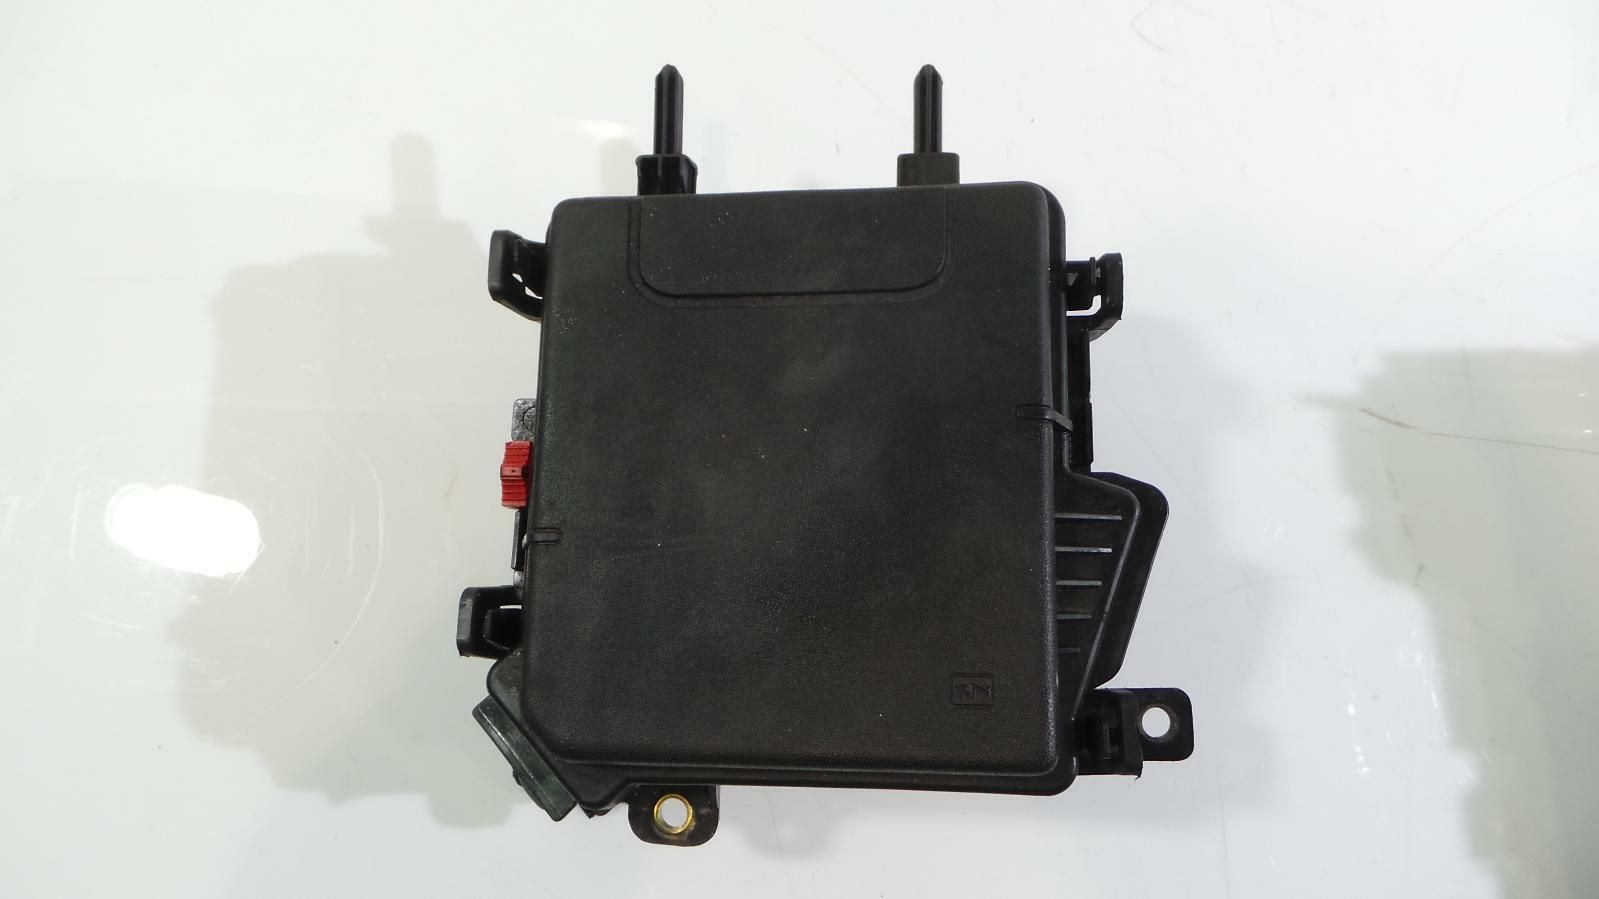 hight resolution of renault megane 3 iii fuse box housing ecu cover lid 284c40002r 284b10002r 15264 p jpg